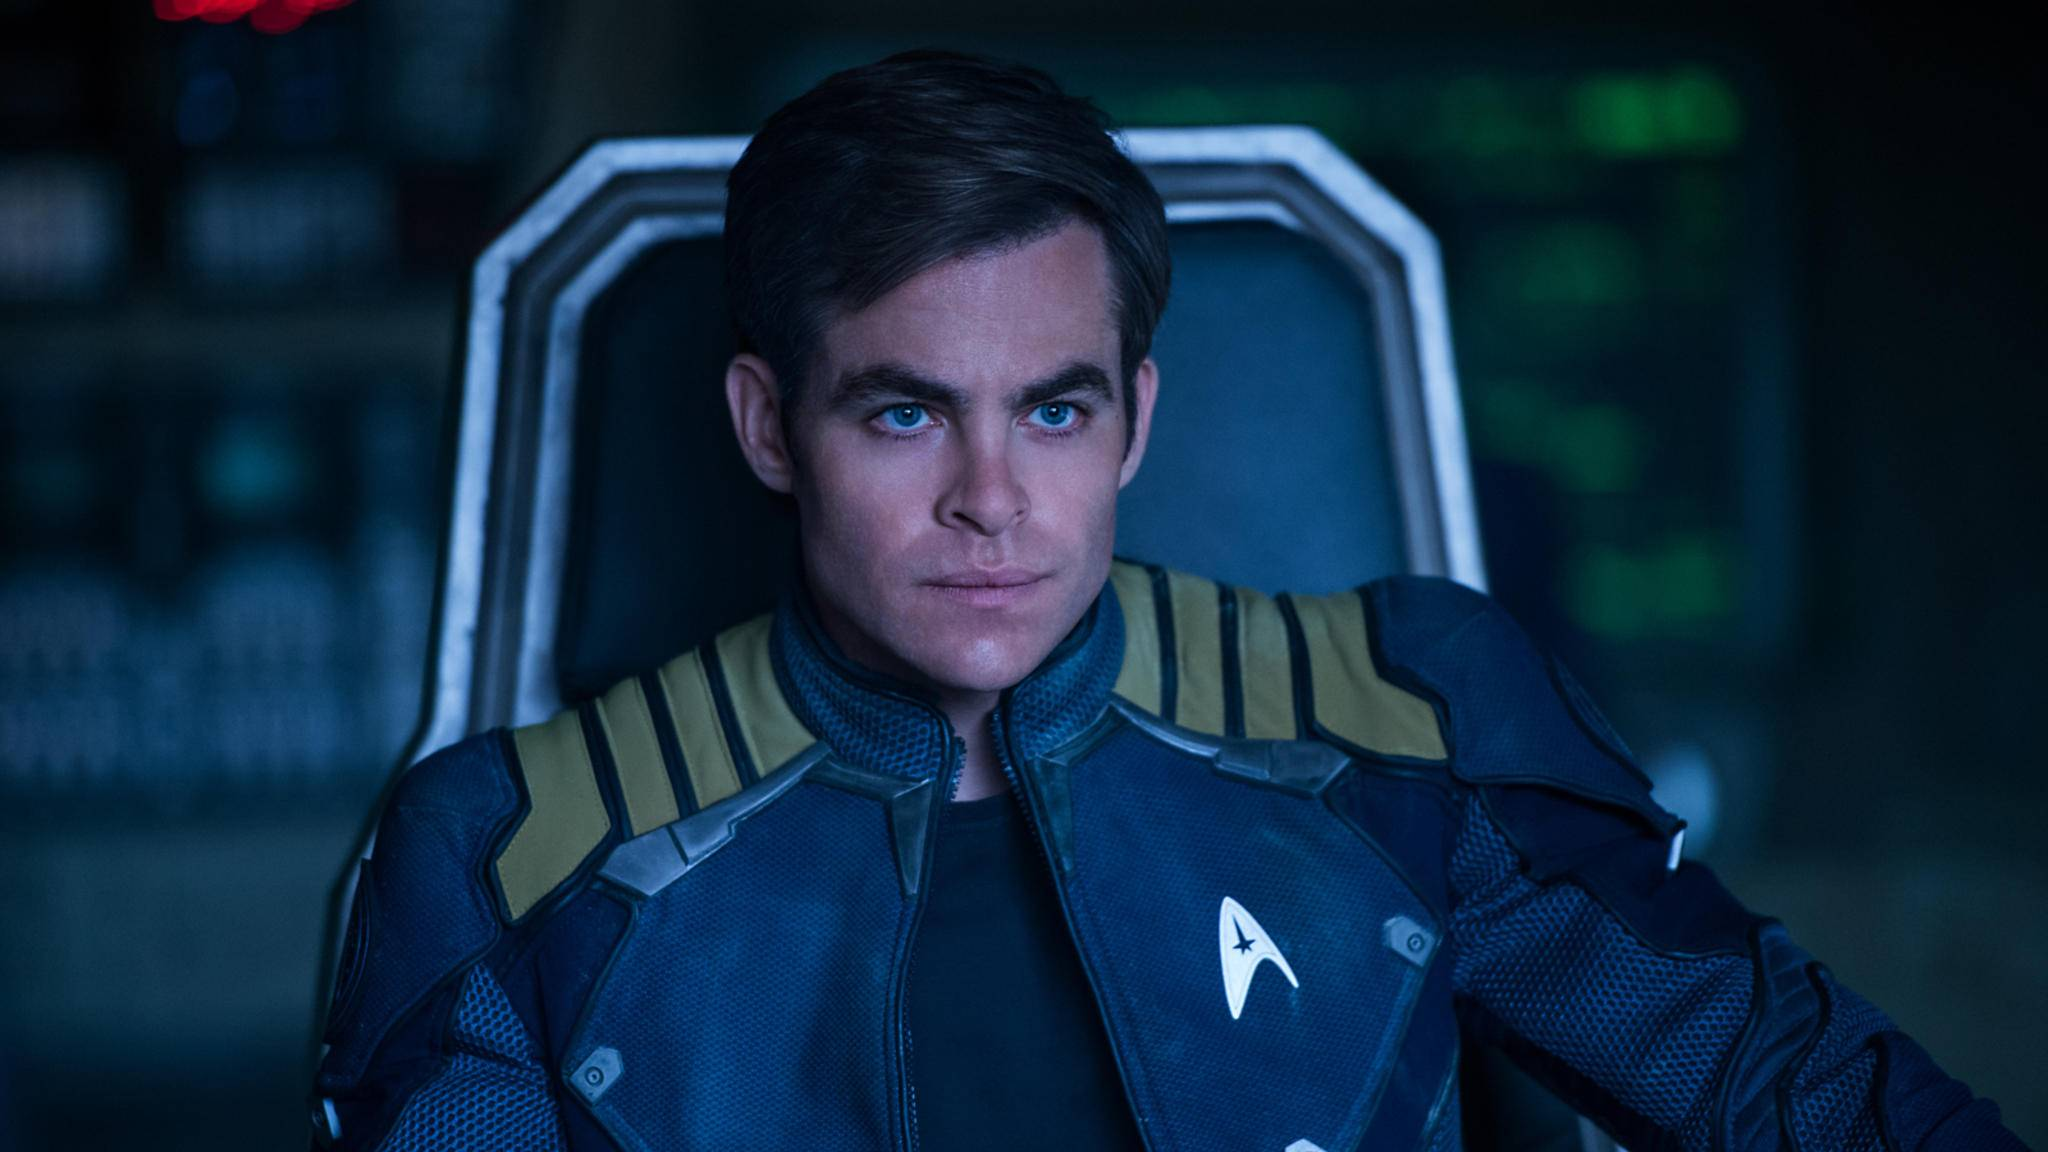 Chris Pine Filme: 11 Highlights von Star Trek bis Wonder Woman